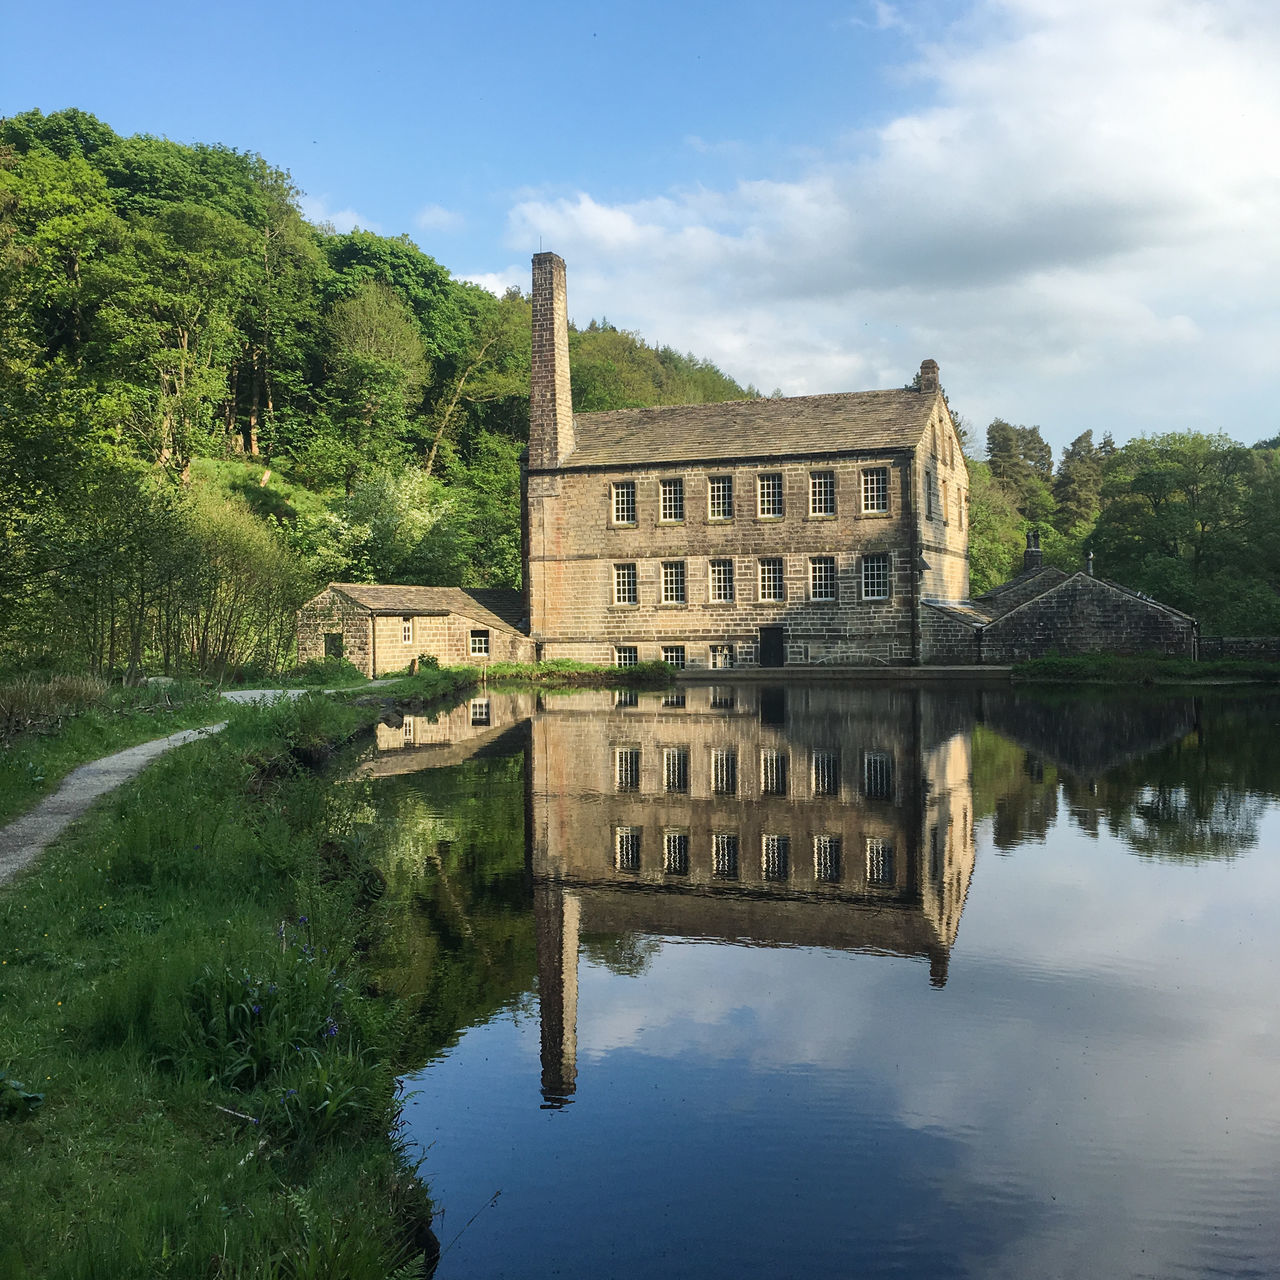 Reflection of Gibson Mill at Hardcastle Crags, West Yorkshire Architecture Building Exterior Building Reflections Built Structure Day History Mill Nature No People Outdoors Reflection Sky Travel Destinations Tree Water Industry Industrial Landscapes Industrial